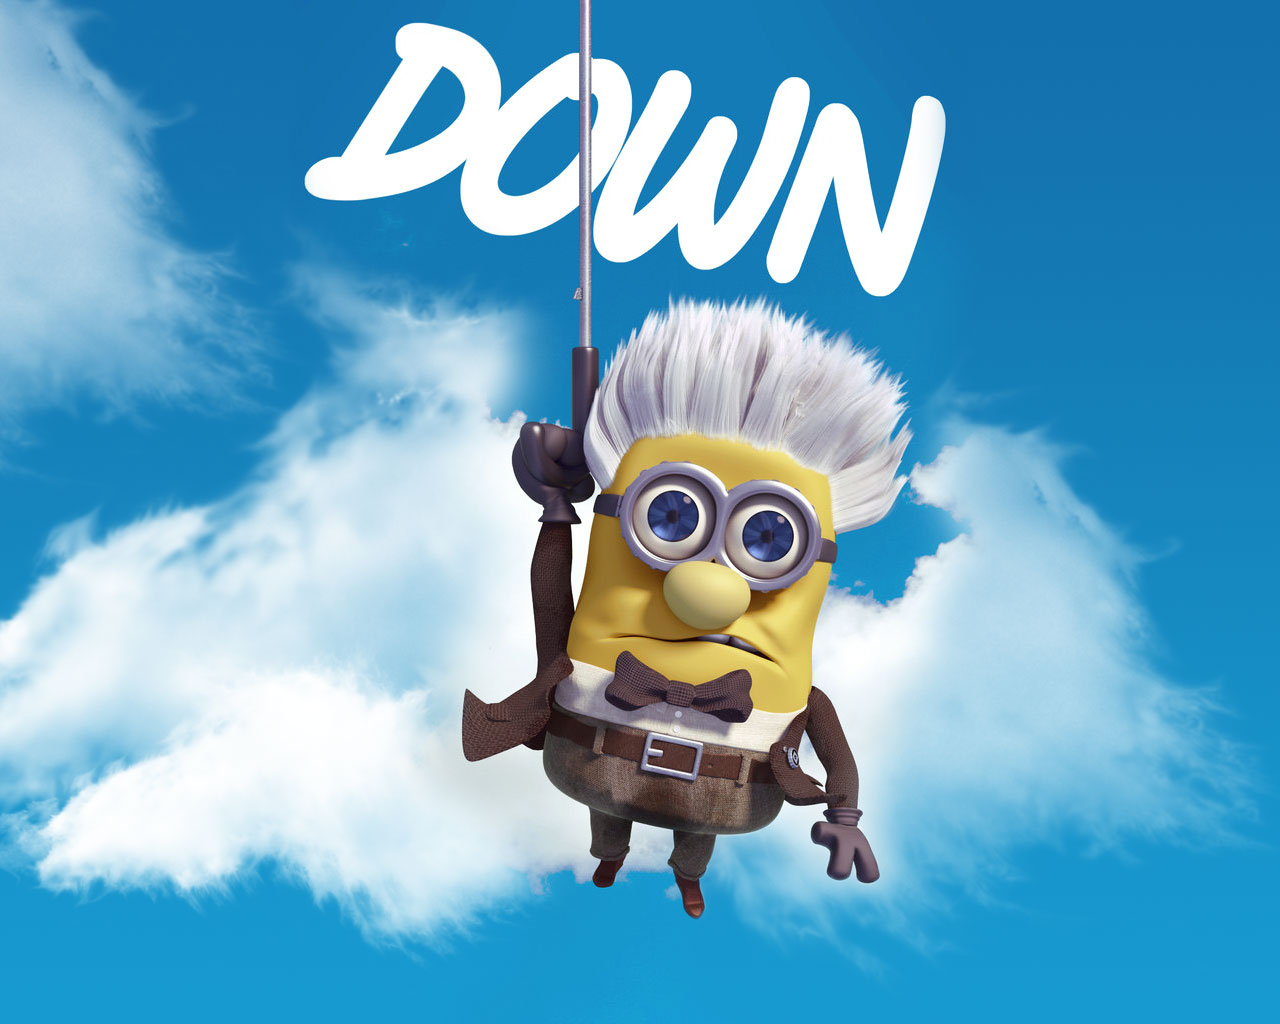 Minions despicable me wallpaper hd dekstop 1280x1024 voltagebd Image collections